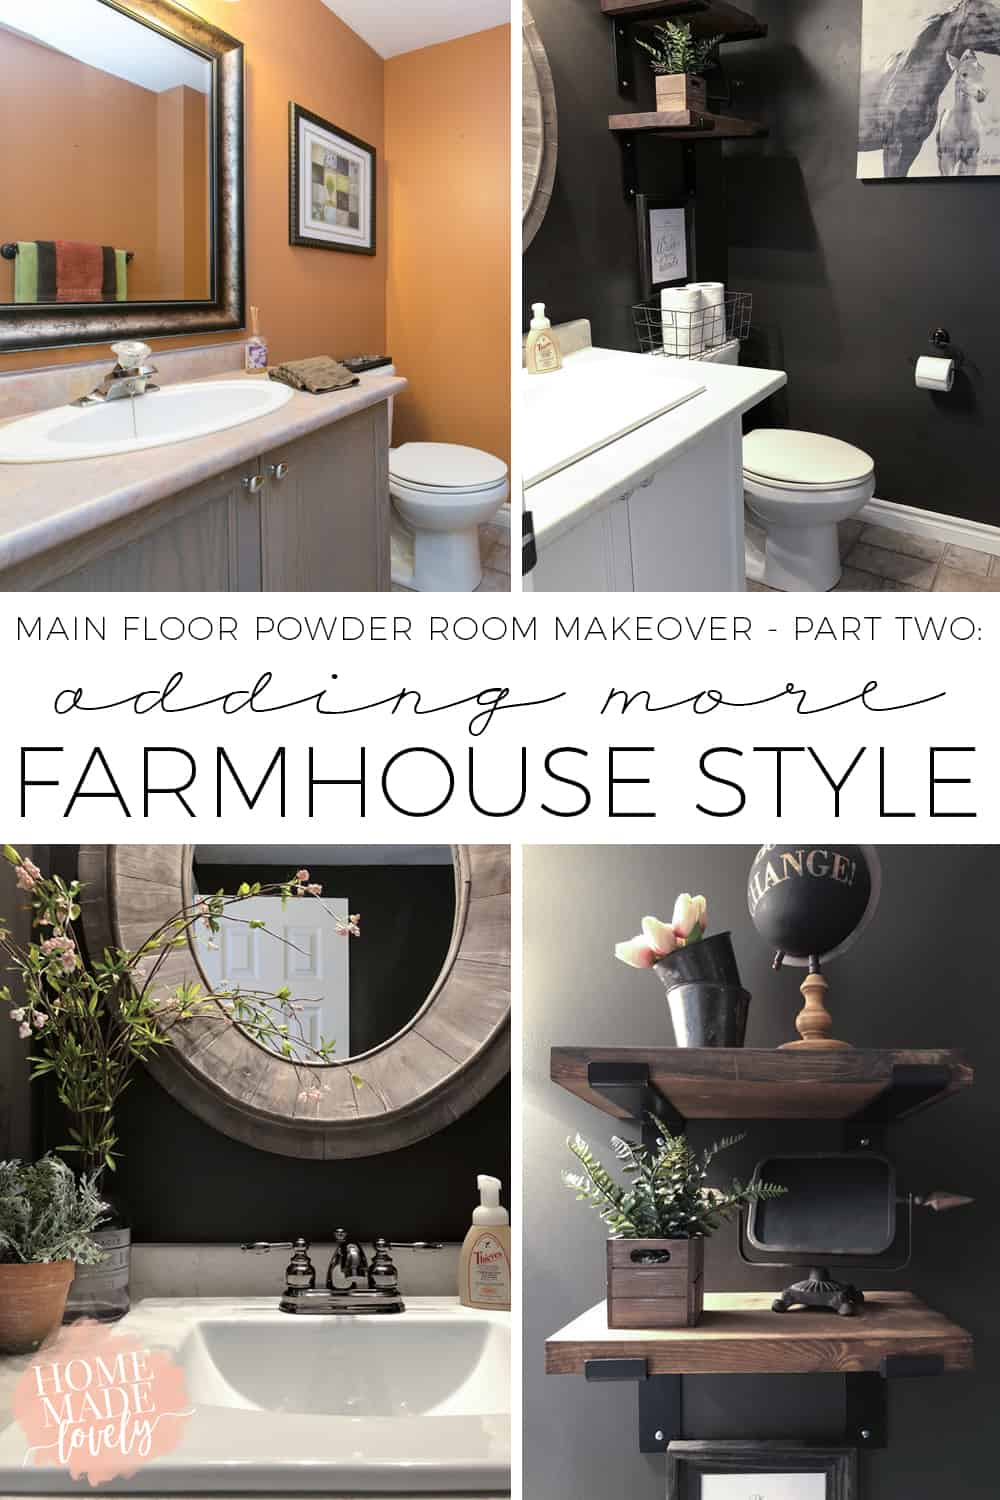 Decorating takes time. Sometimes it's not possible to give a space a whole makeover all at once. Here is our main floor powder room makeover part two, with a little more farmhouse style.